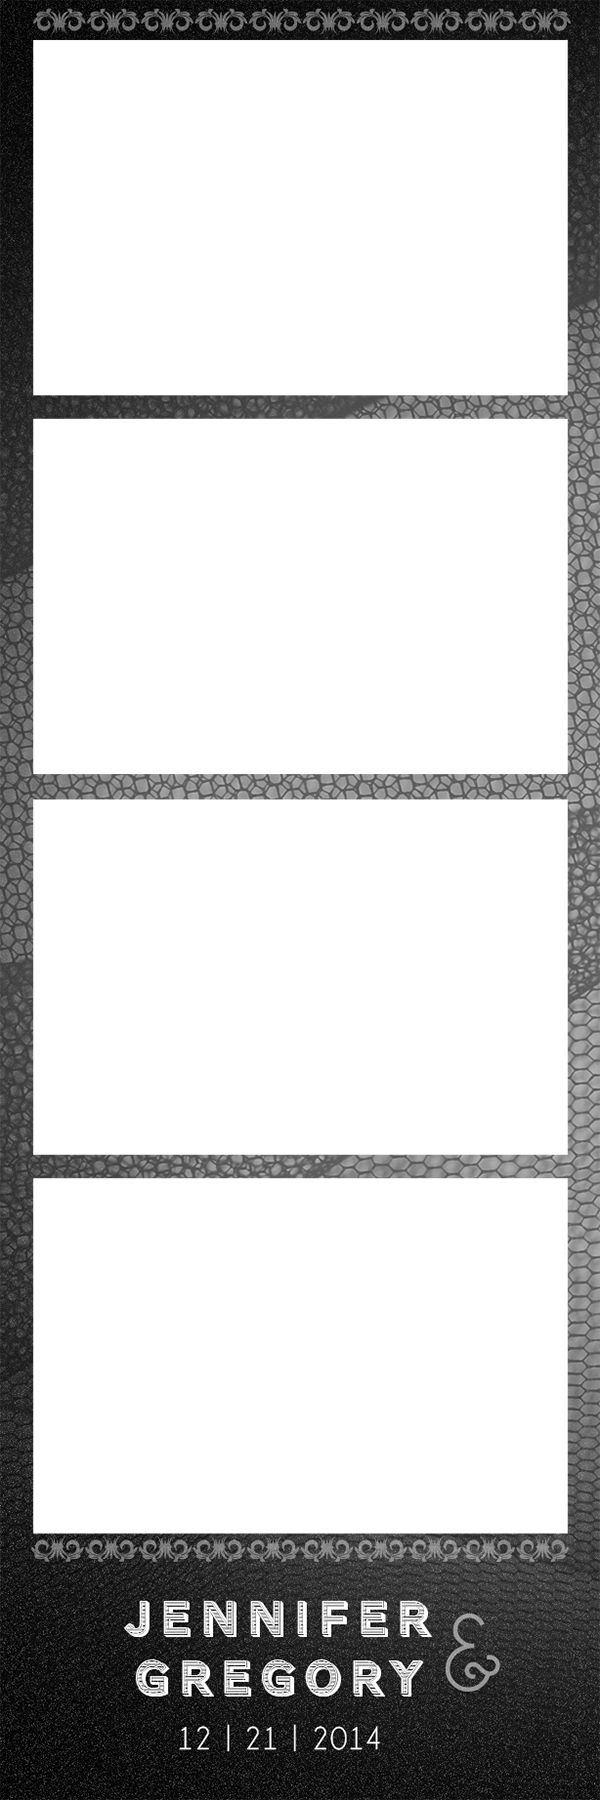 010B_BlackAndGrey_4UP_D1.png